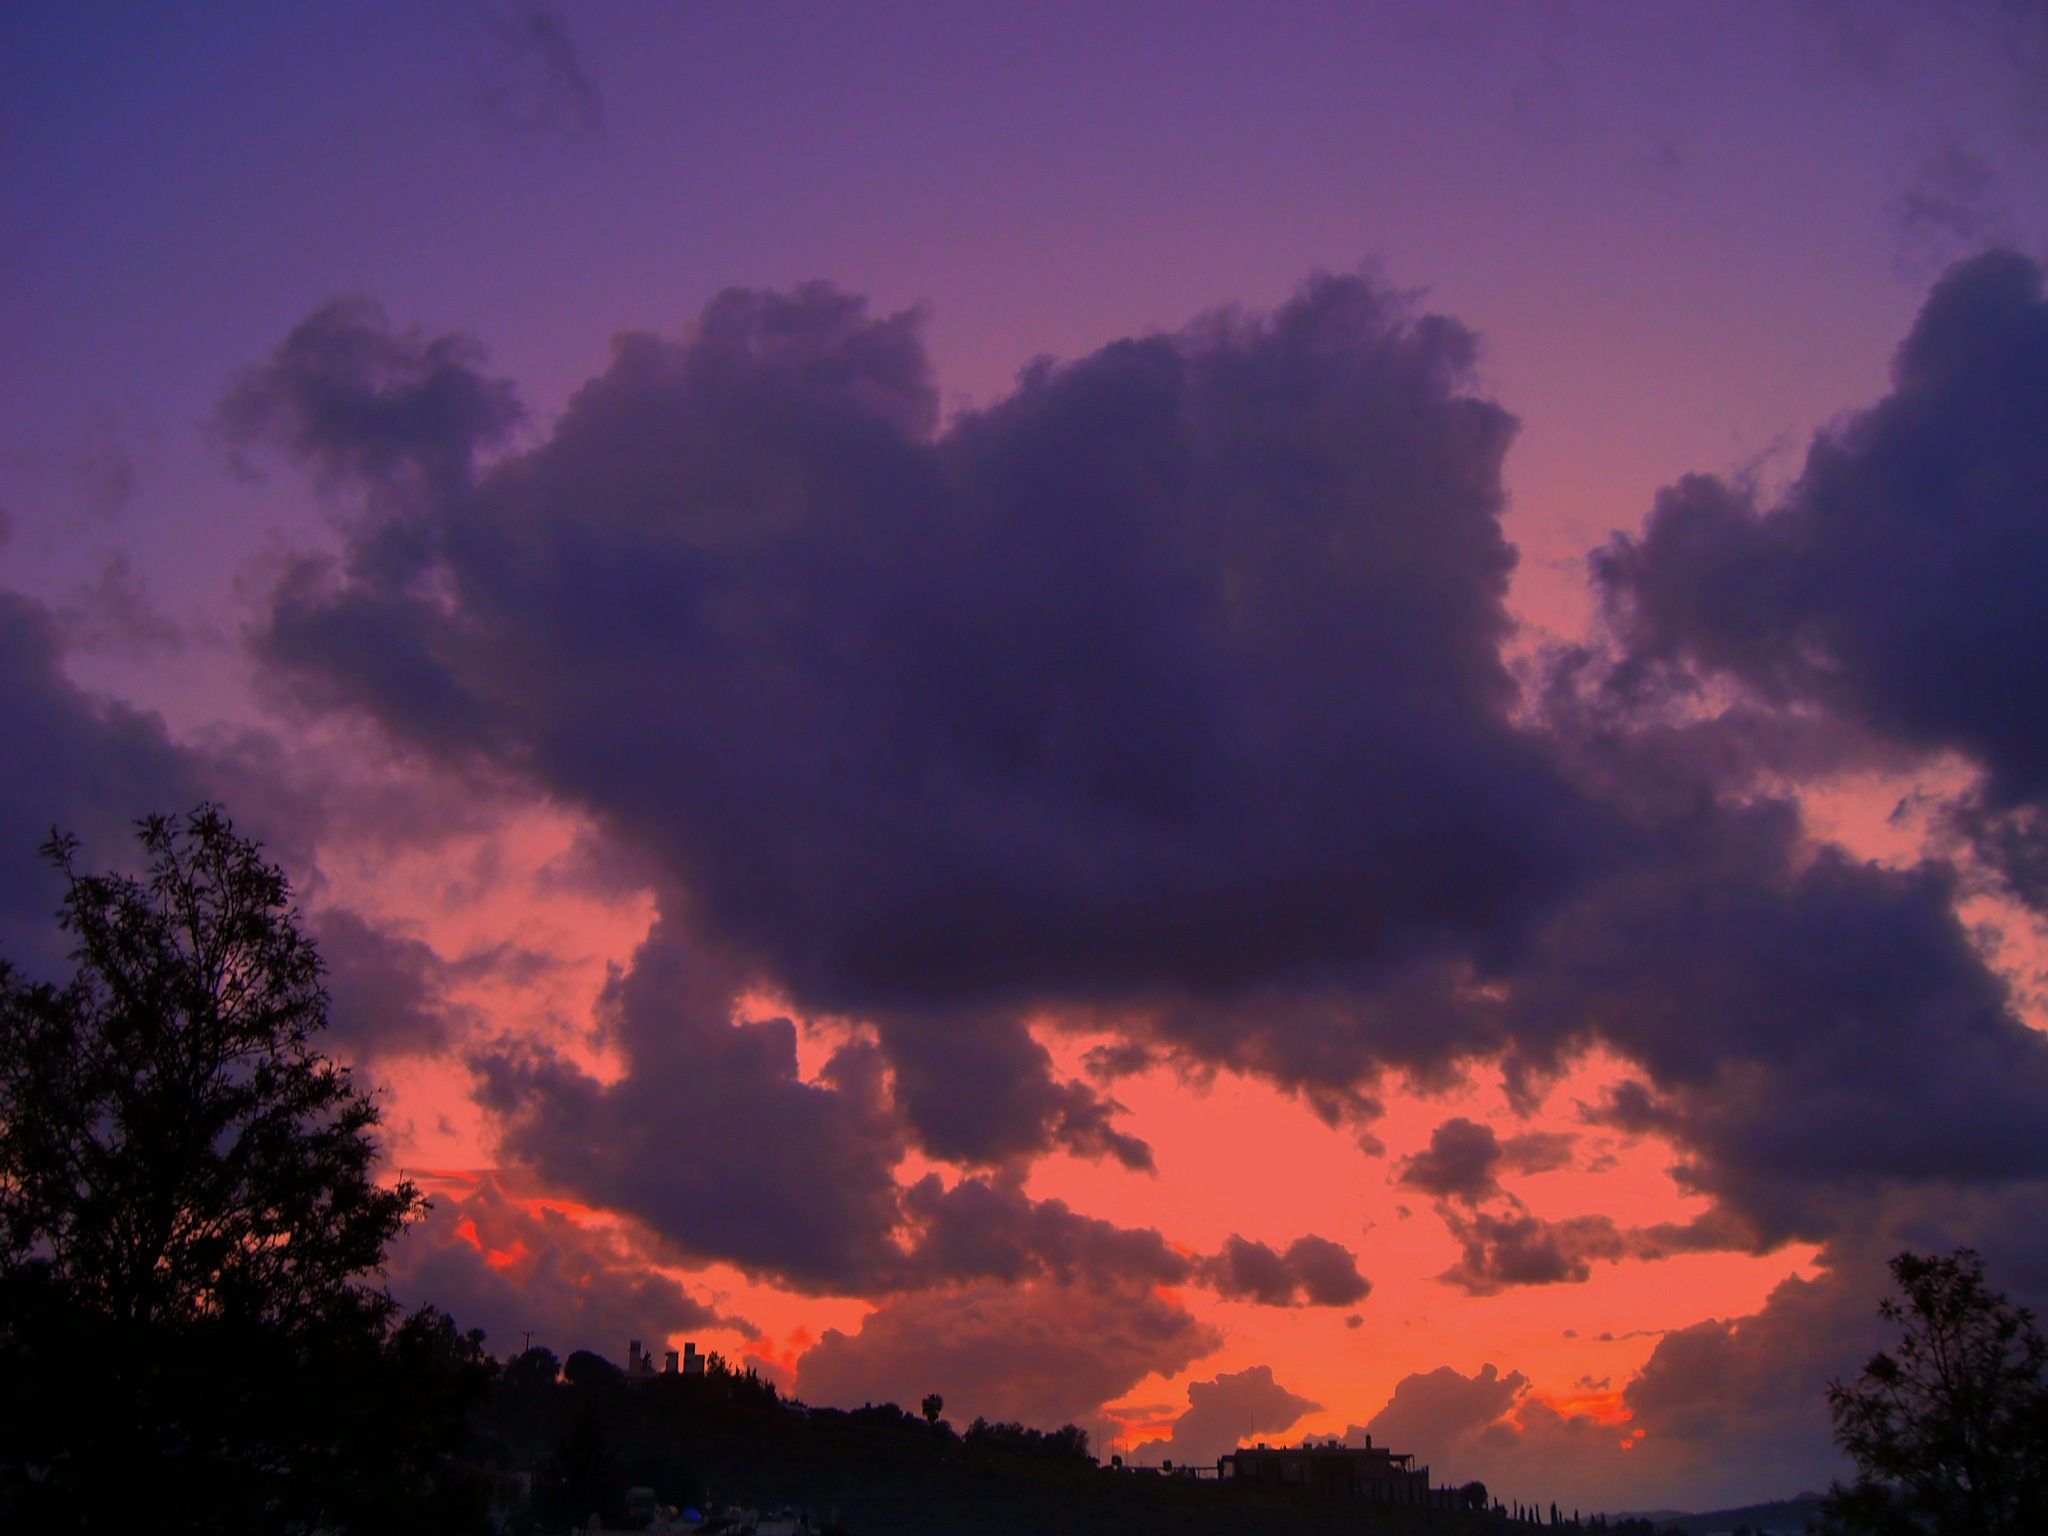 GOOD NIGHT FROM BODRUM 780, TONIGHT'S SUNSET by Akin Saner